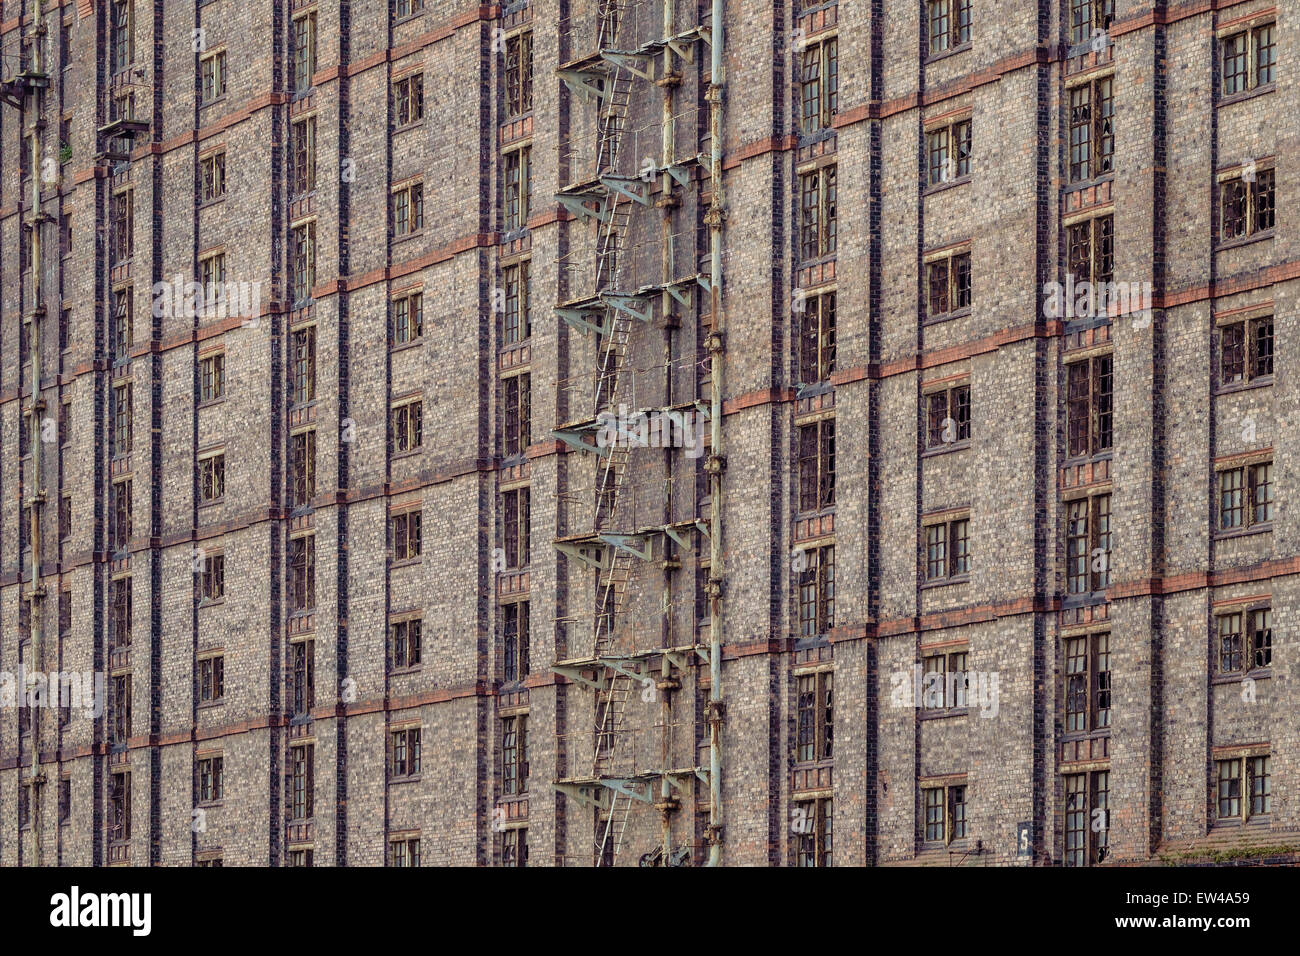 Detail of the derelict Tobacco Warehouse in Liverpool. One of the largest brick buildings in the world. Stock Photo